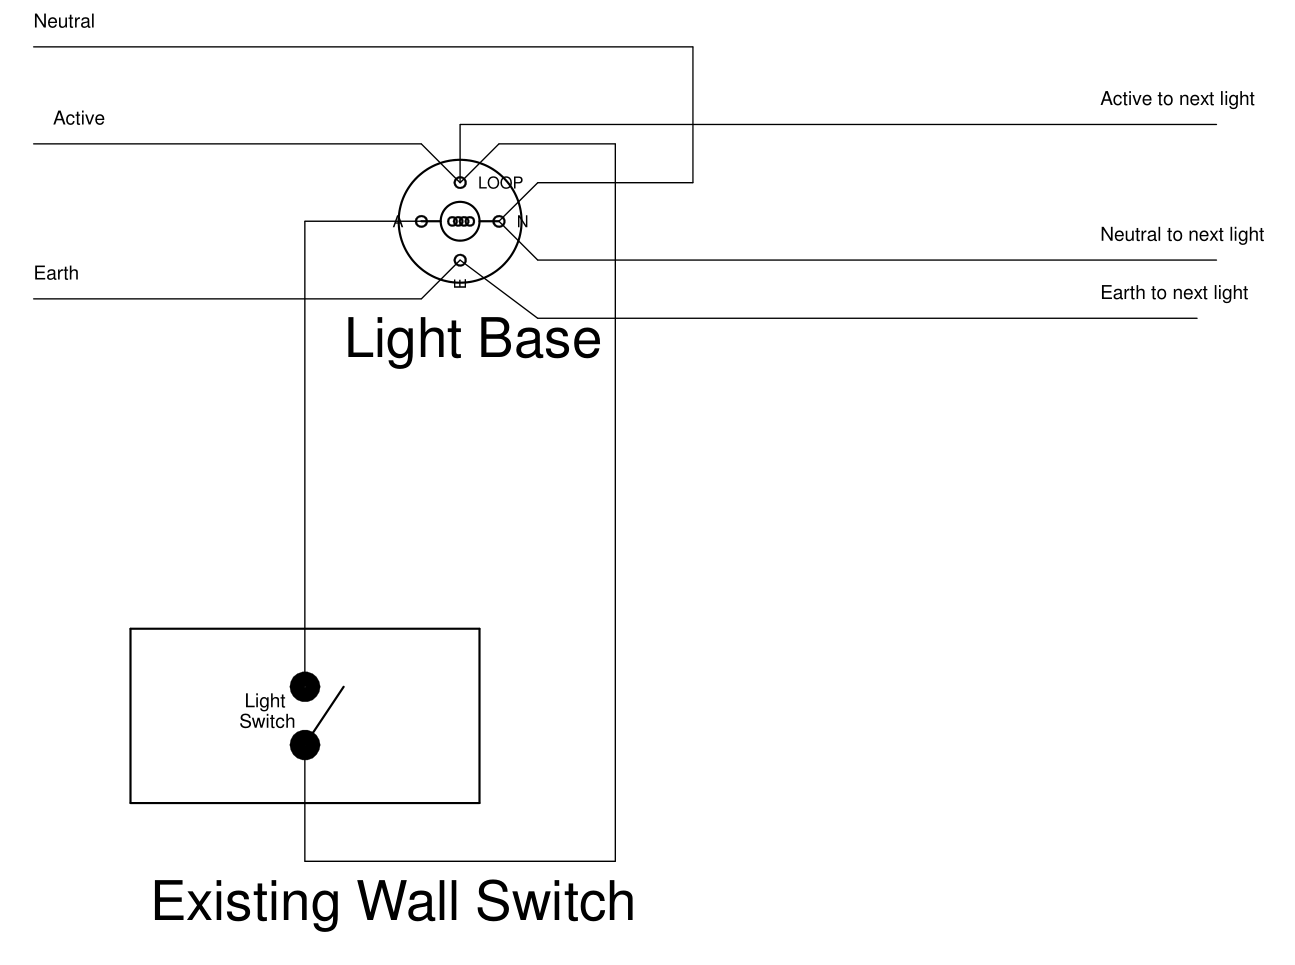 Retrofit House Lights With Wifi Keep Existing Switches Controlled How To Install A Switch Light Active Neutral And Earth Wires Are Often Looped From Base For Each The Is Down Wall Back